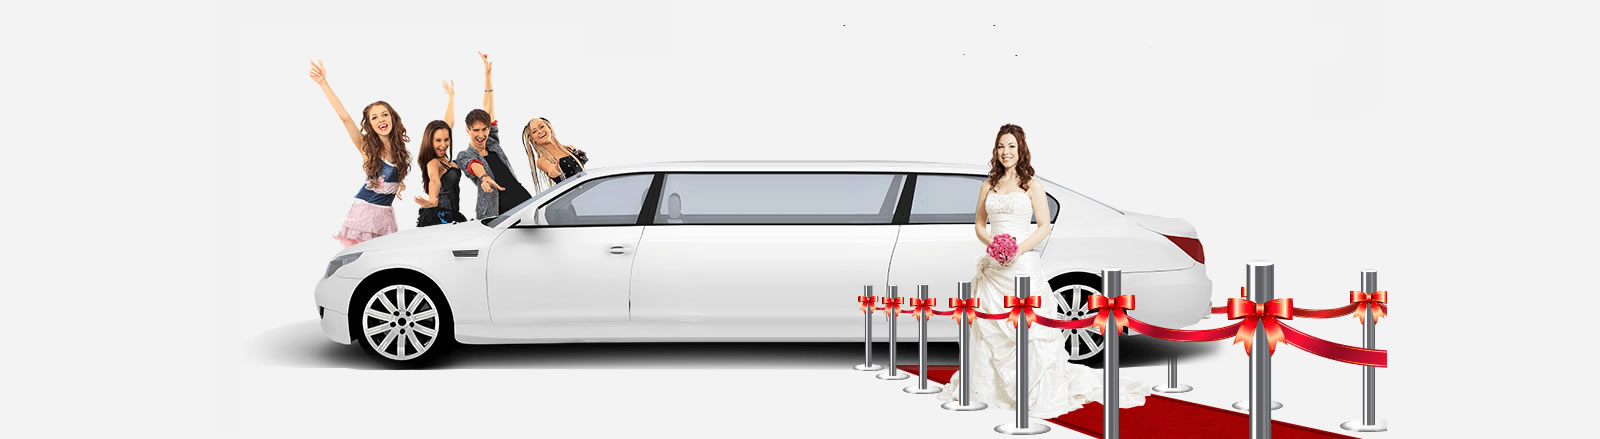 Get a limo hire quote